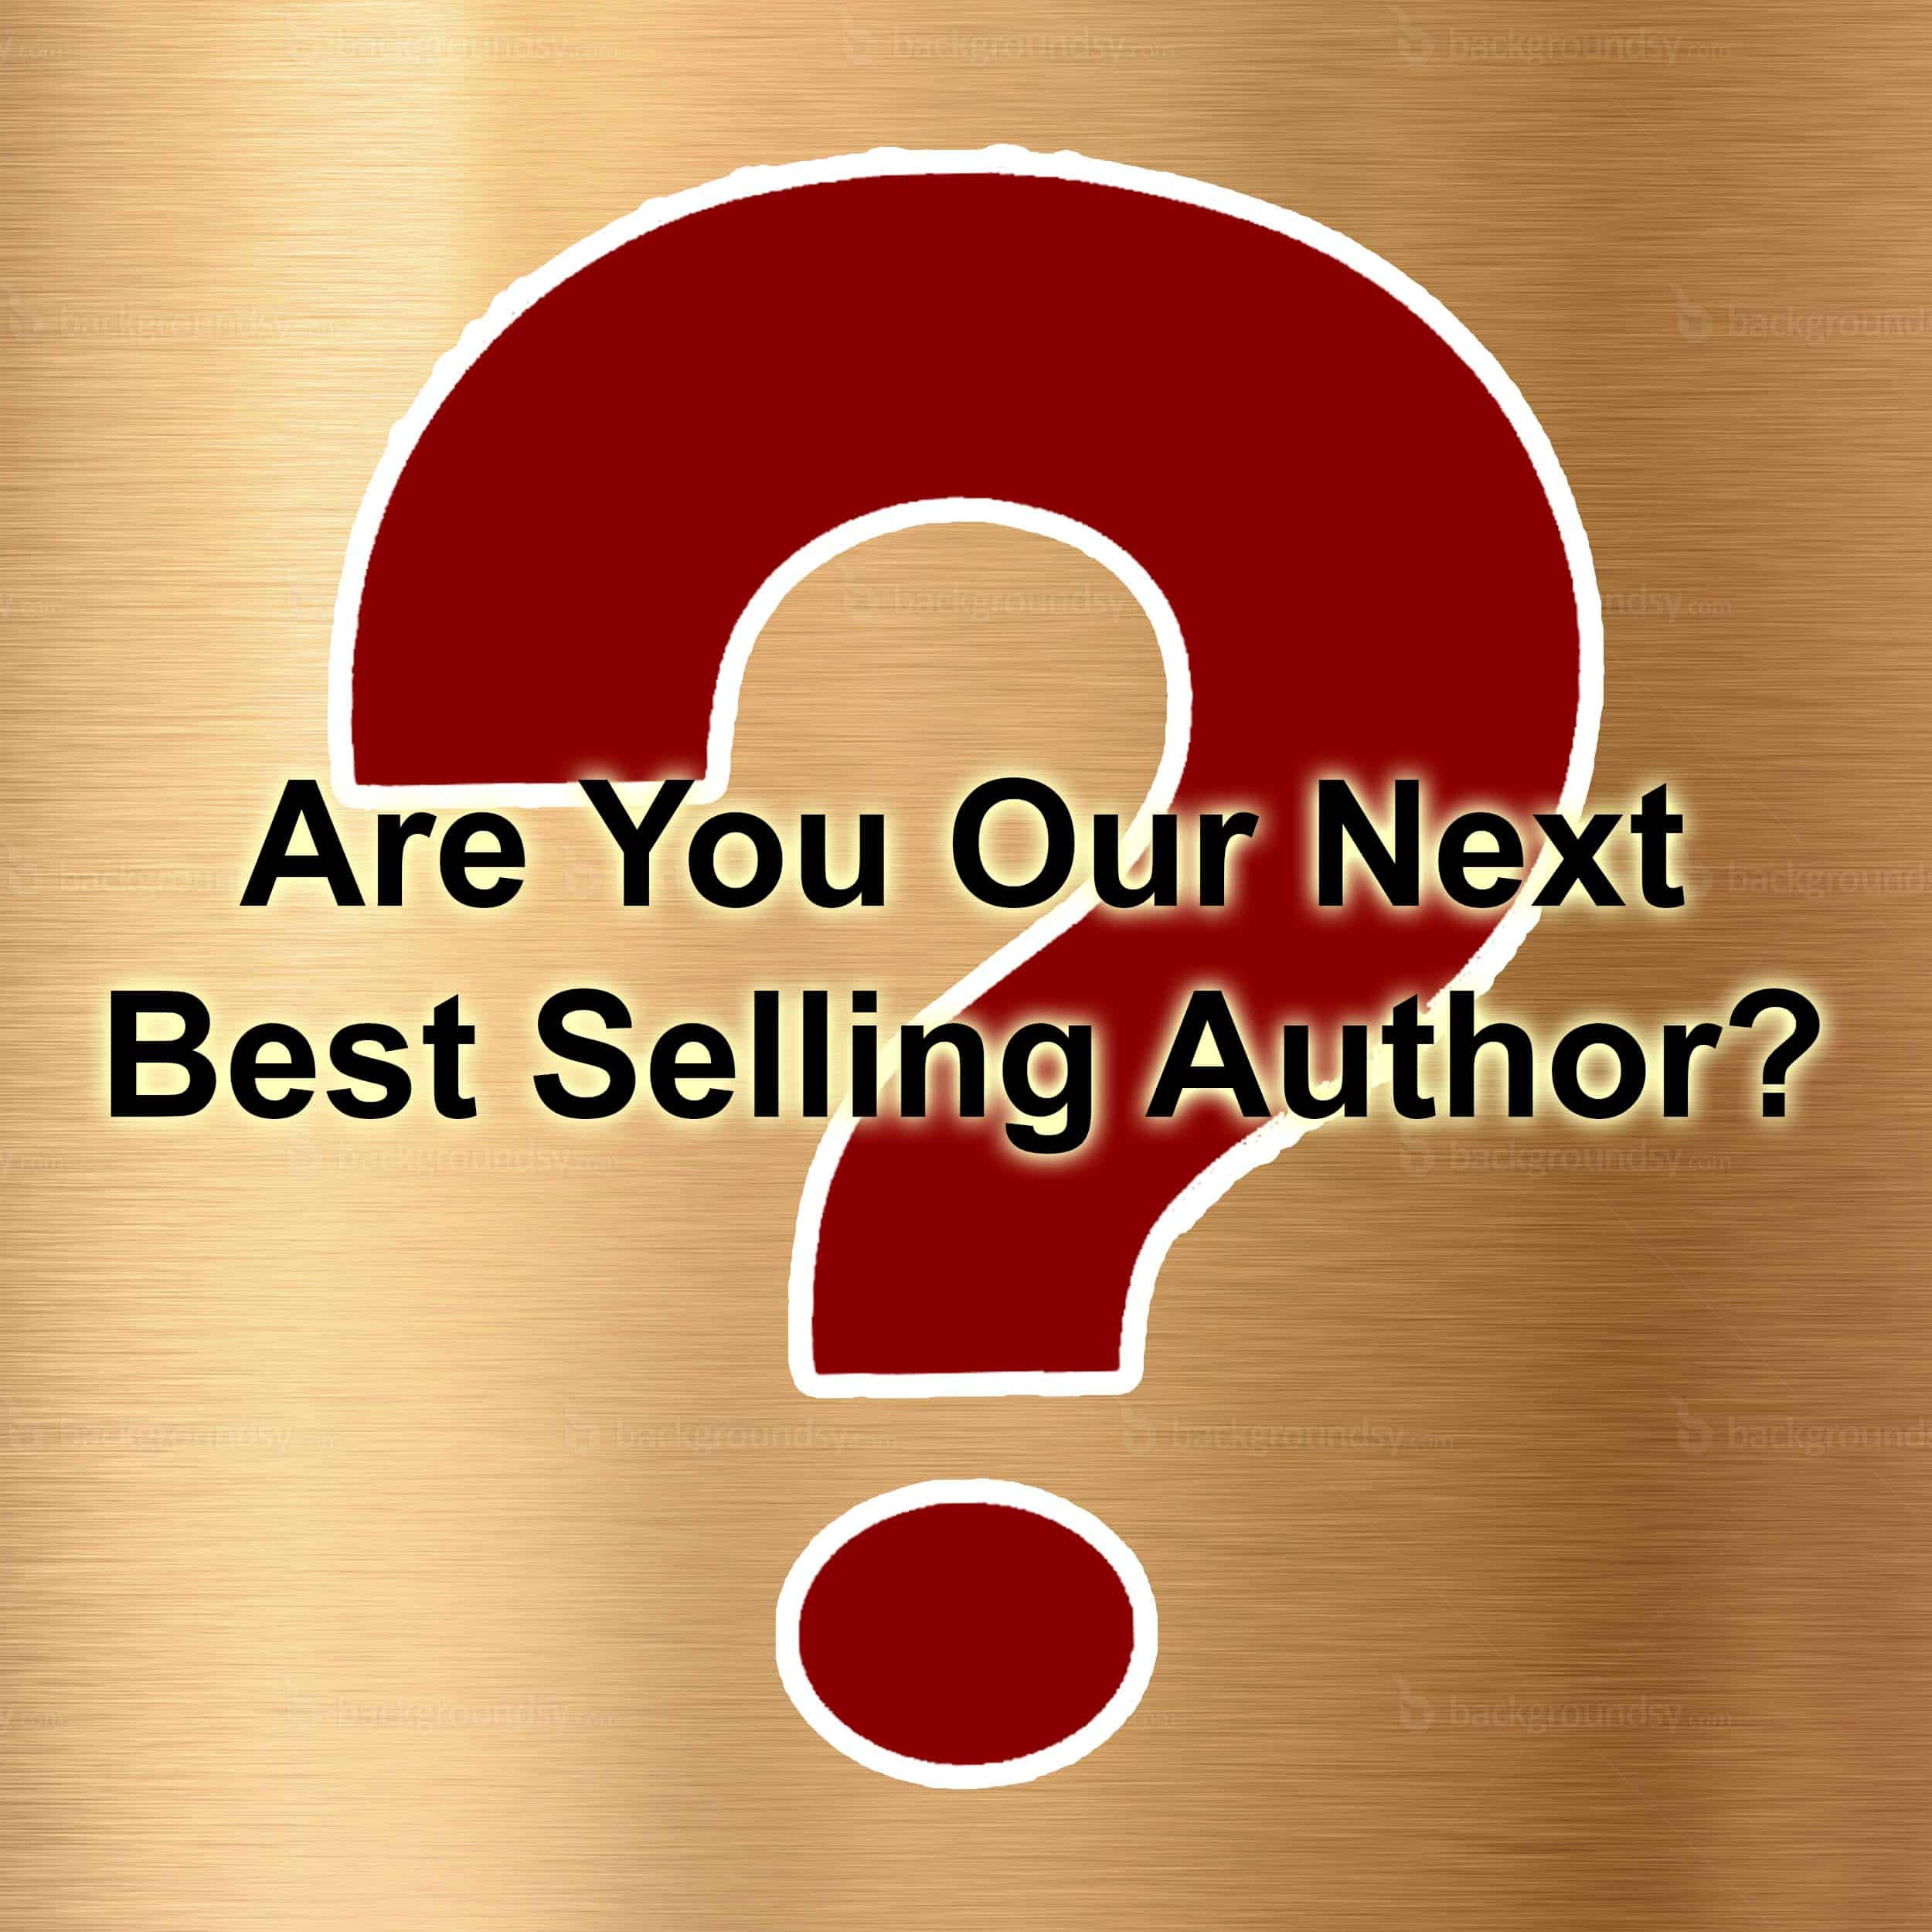 Are You Our Next Best Selling Author?